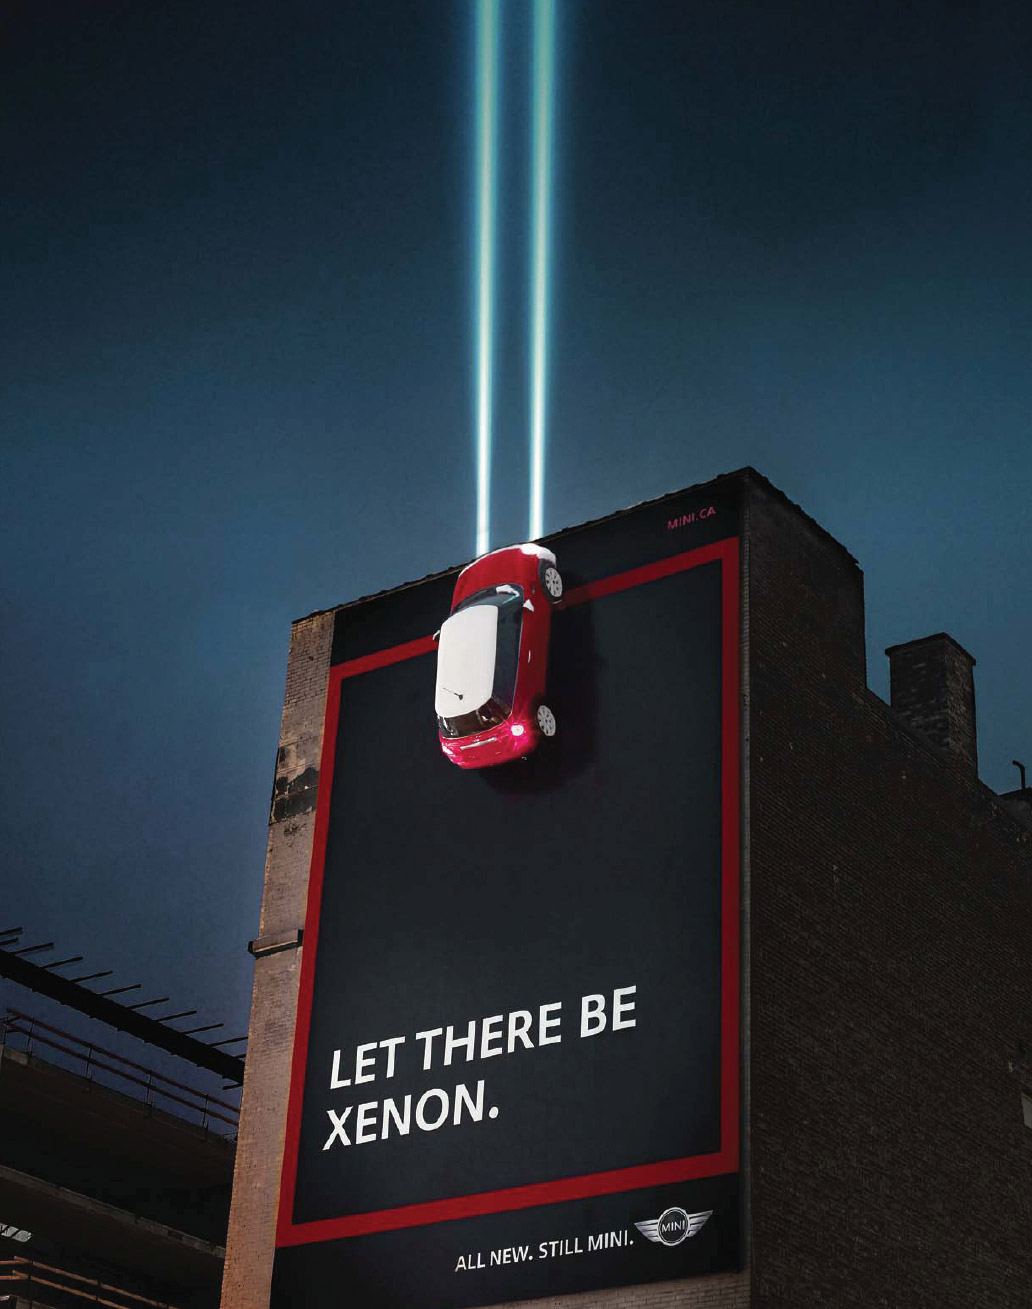 creative-marketing-mini